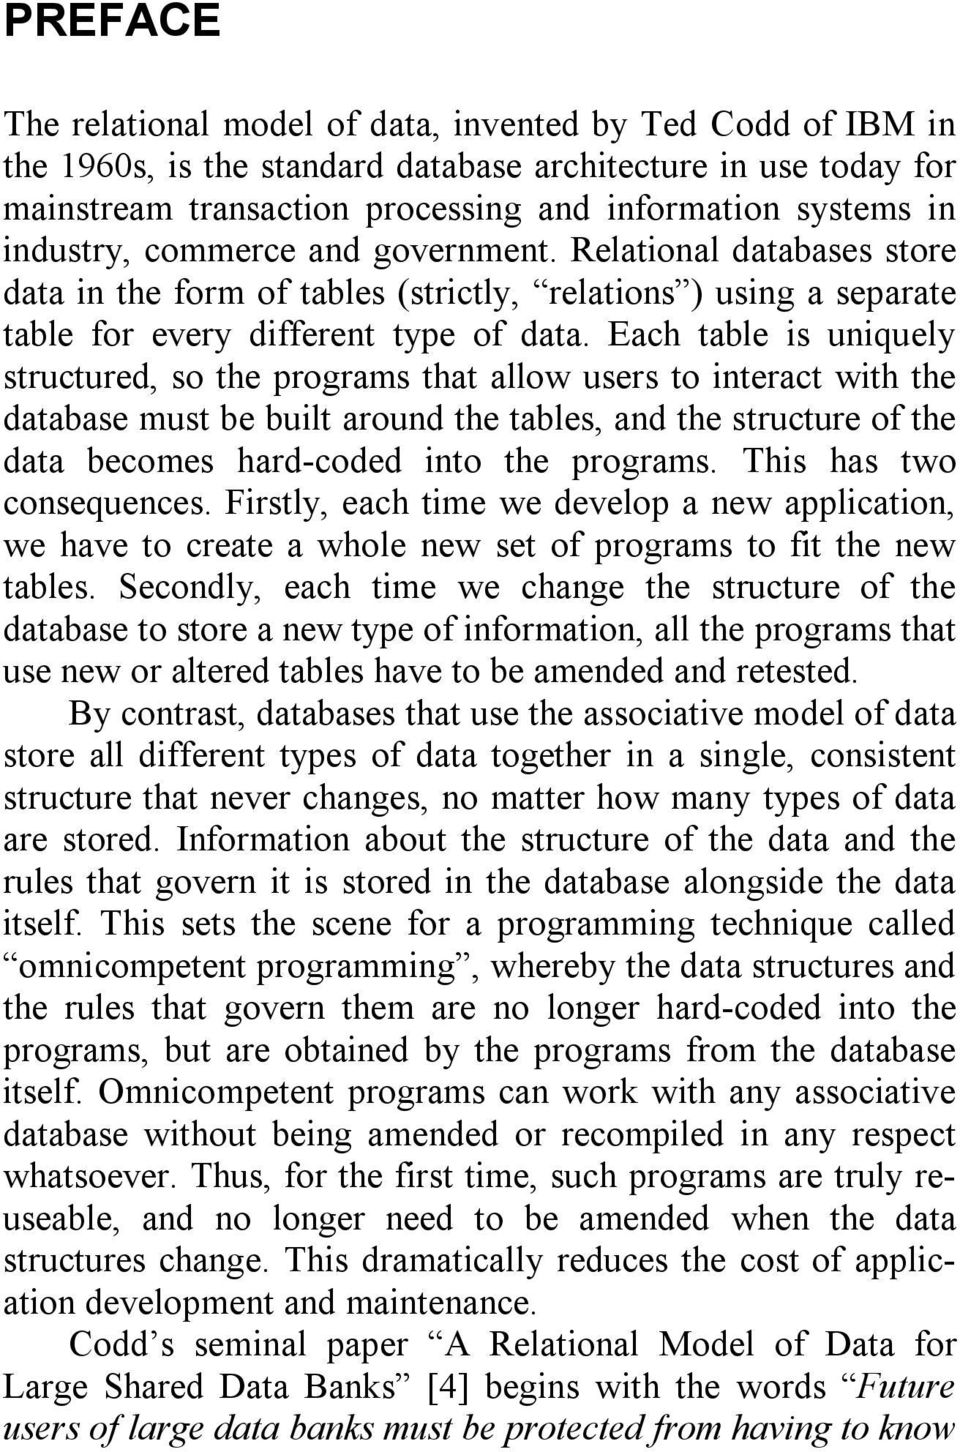 Each table is uniquely structured, so the programs that allow users to interact with the database must be built around the tables, and the structure of the data becomes hard-coded into the programs.